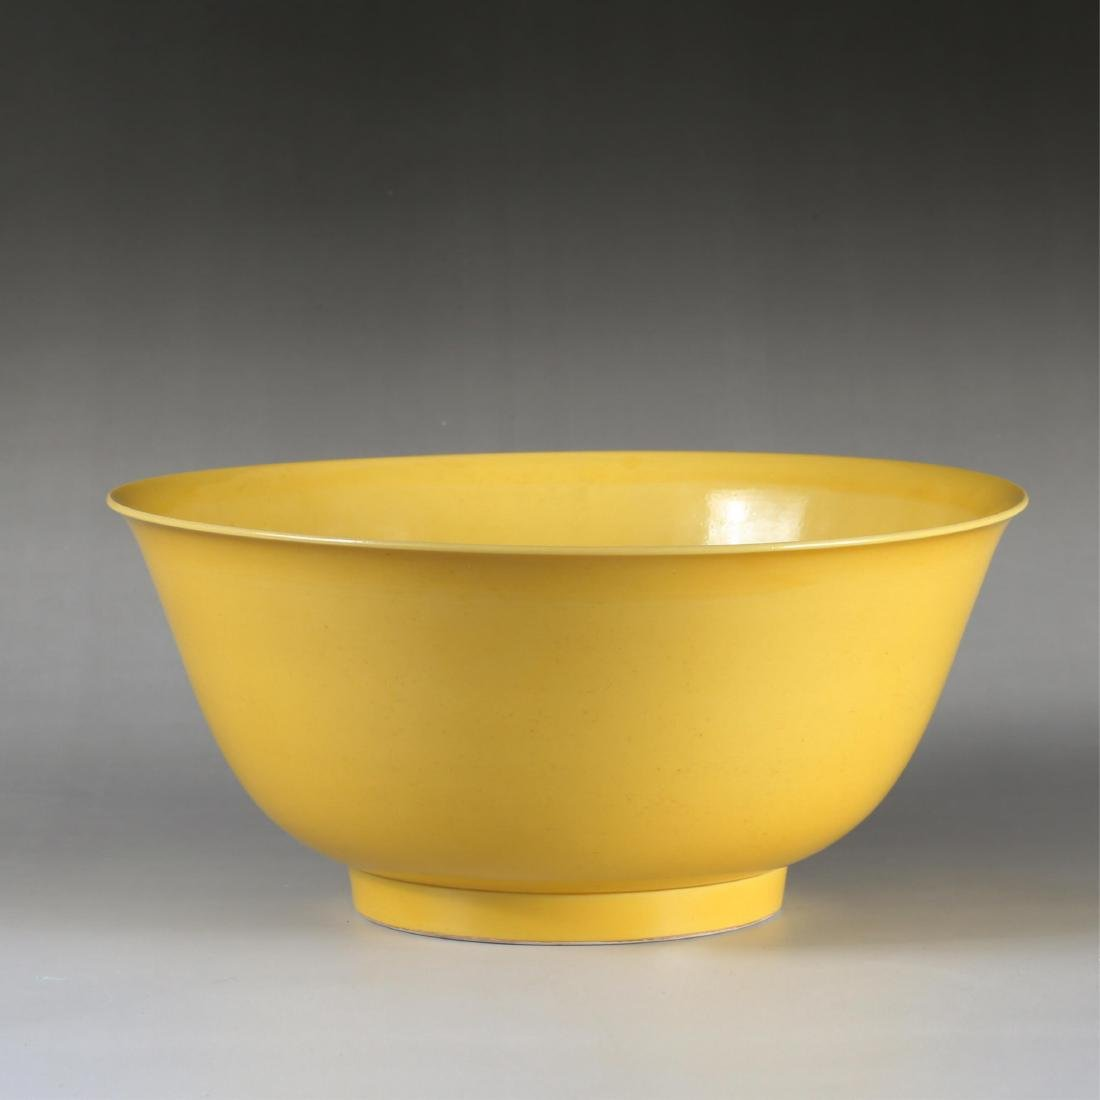 CHINESE YELLOW GLAZED BOWL, QING DYNASTY